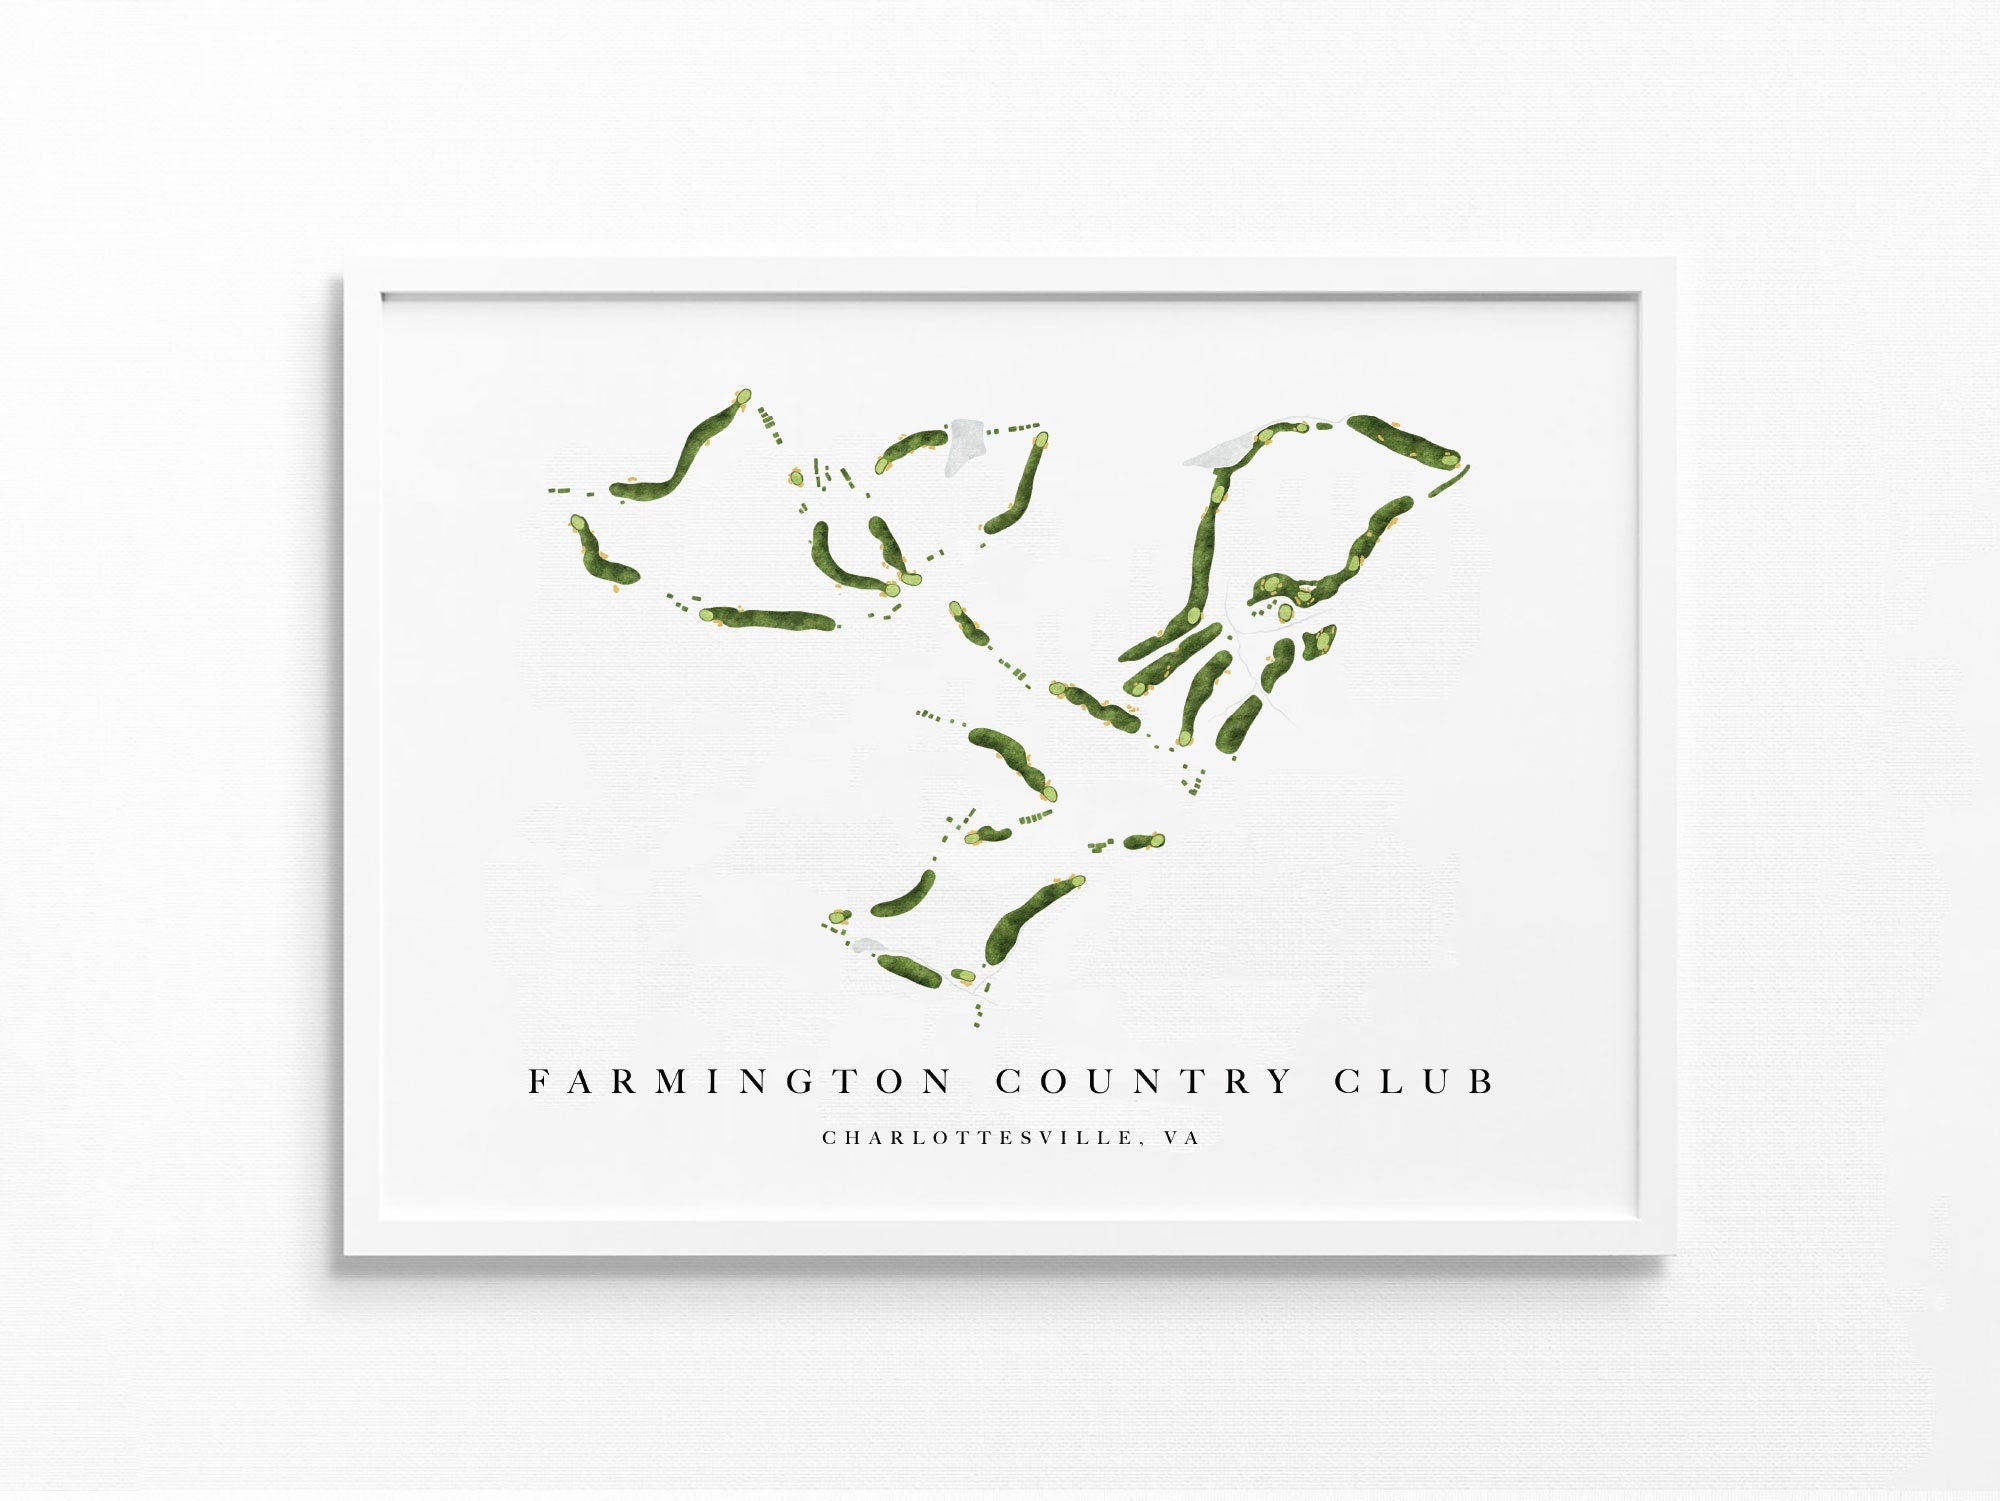 Farmington Country Club | Charlottesville, VA